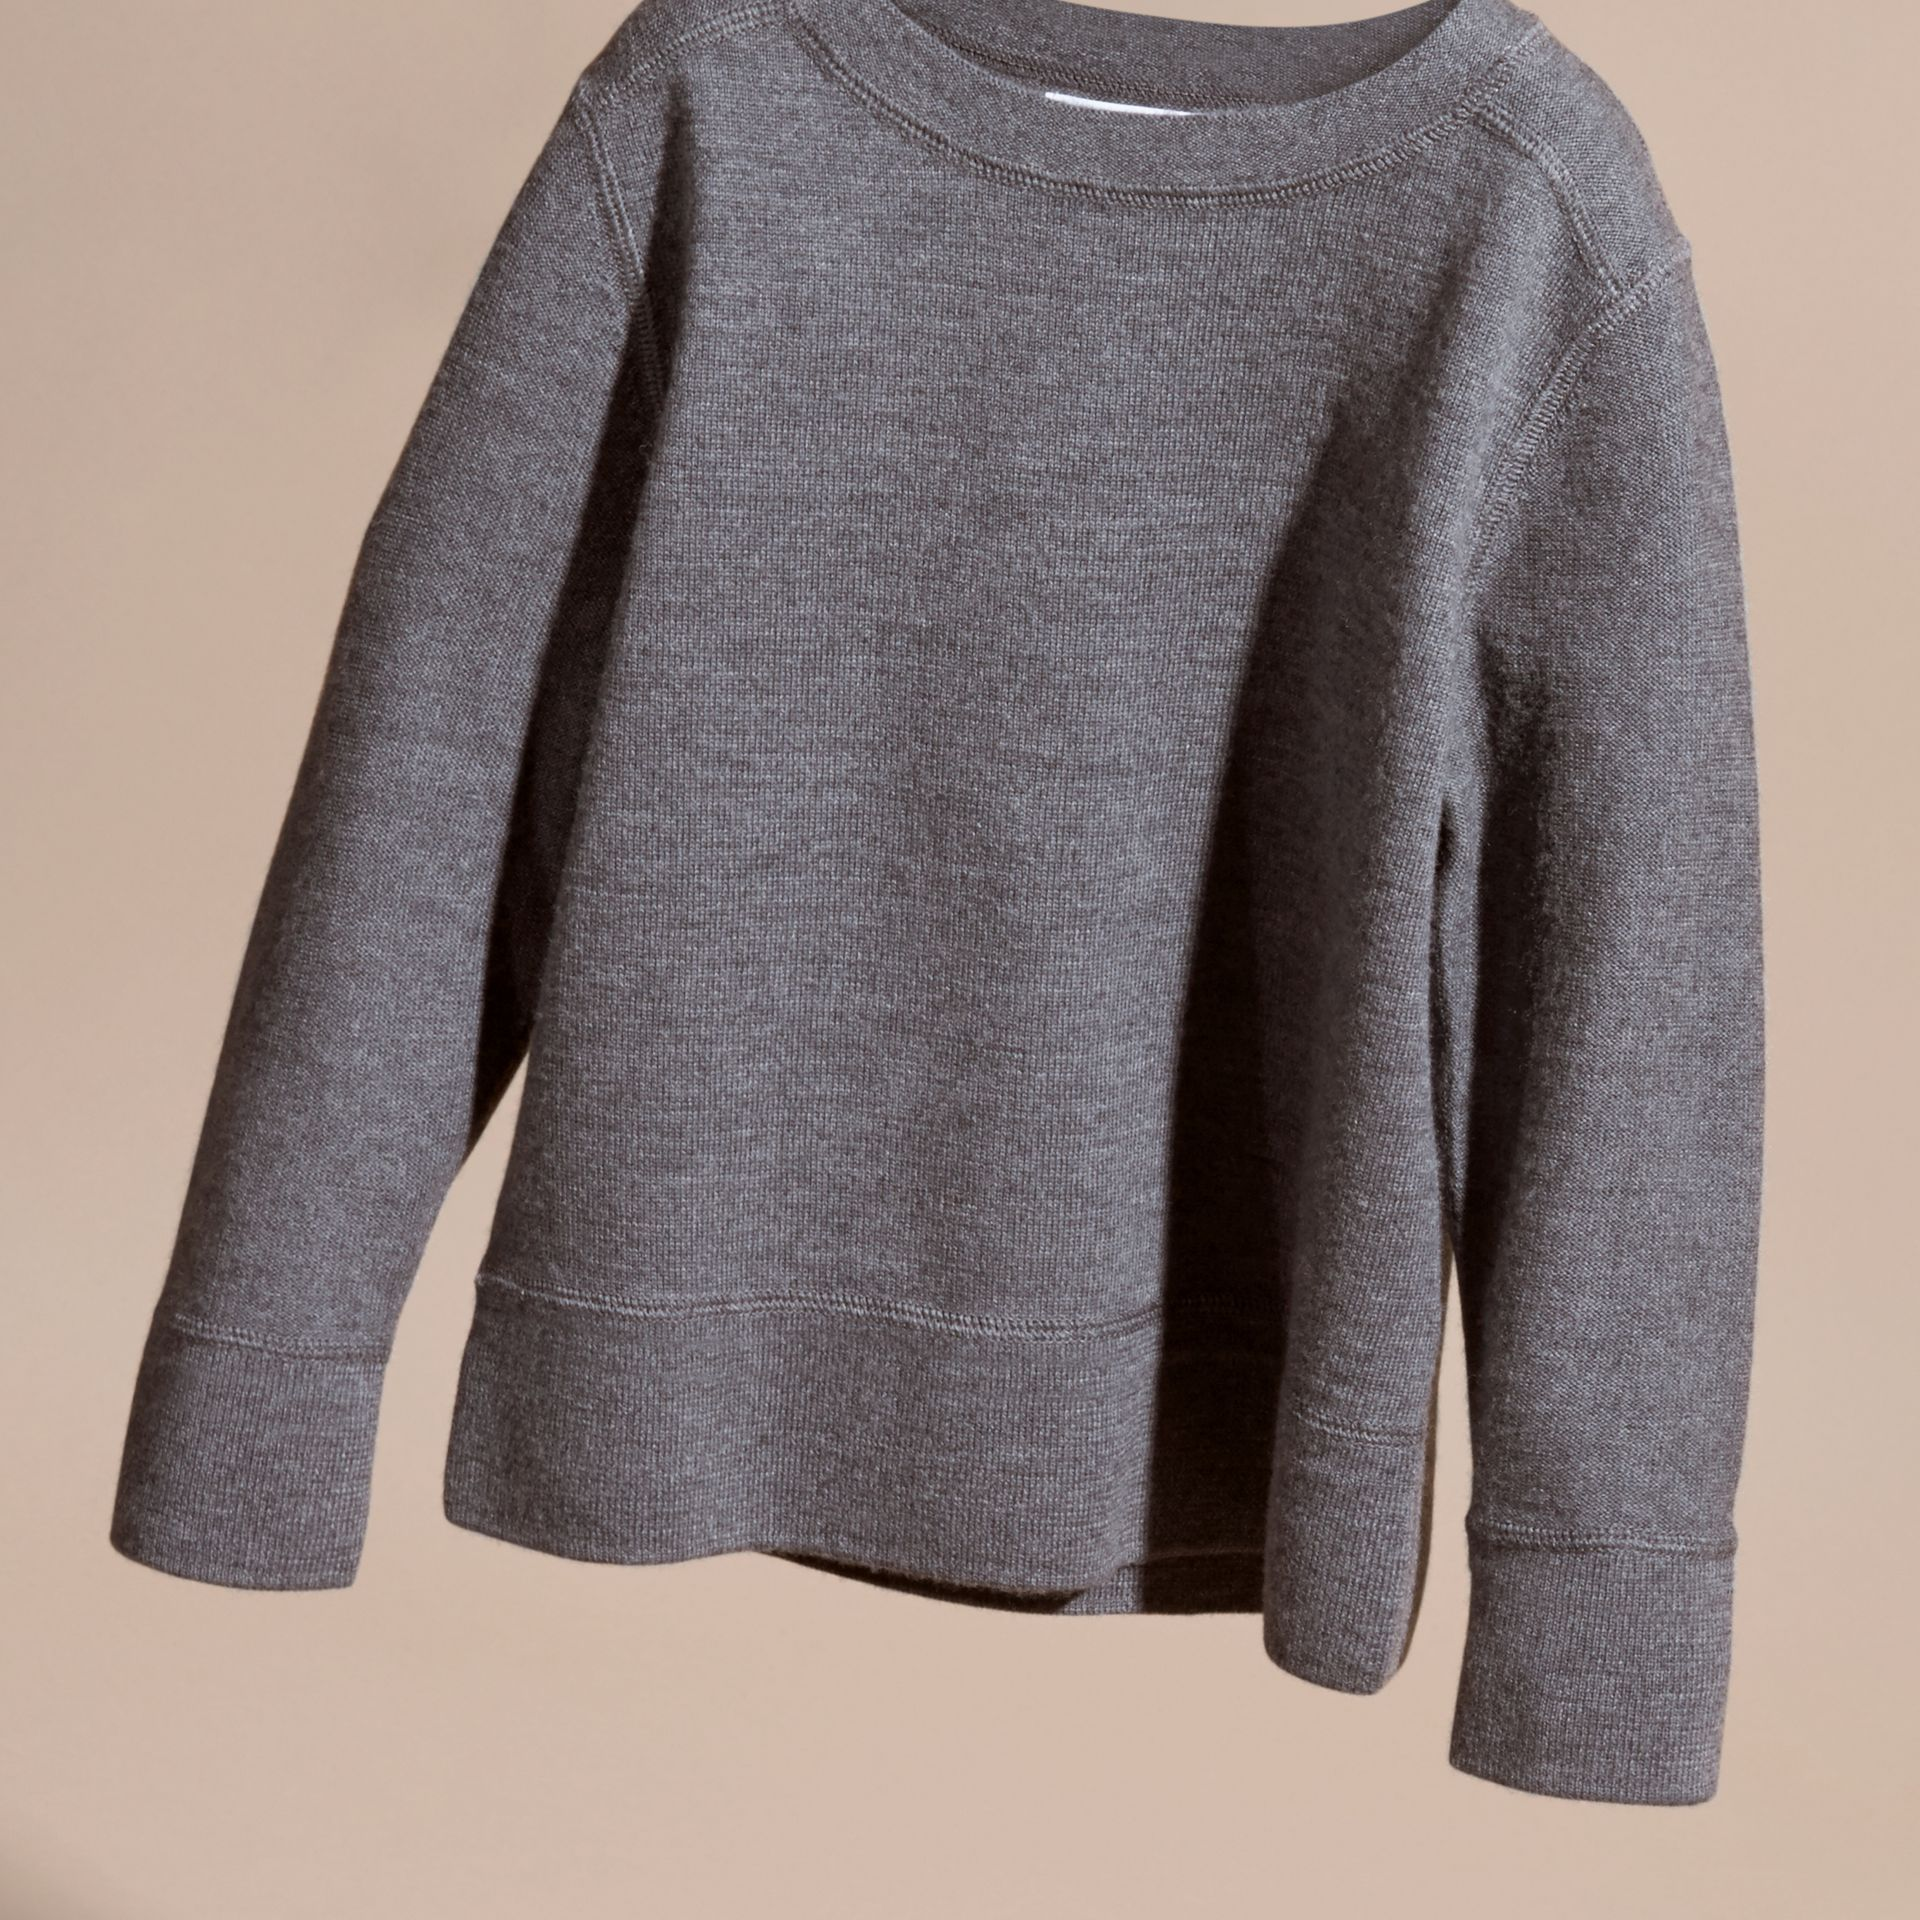 Check Elbow Patch Merino Wool Sweater in Mid Grey Melange | Burberry - gallery image 3